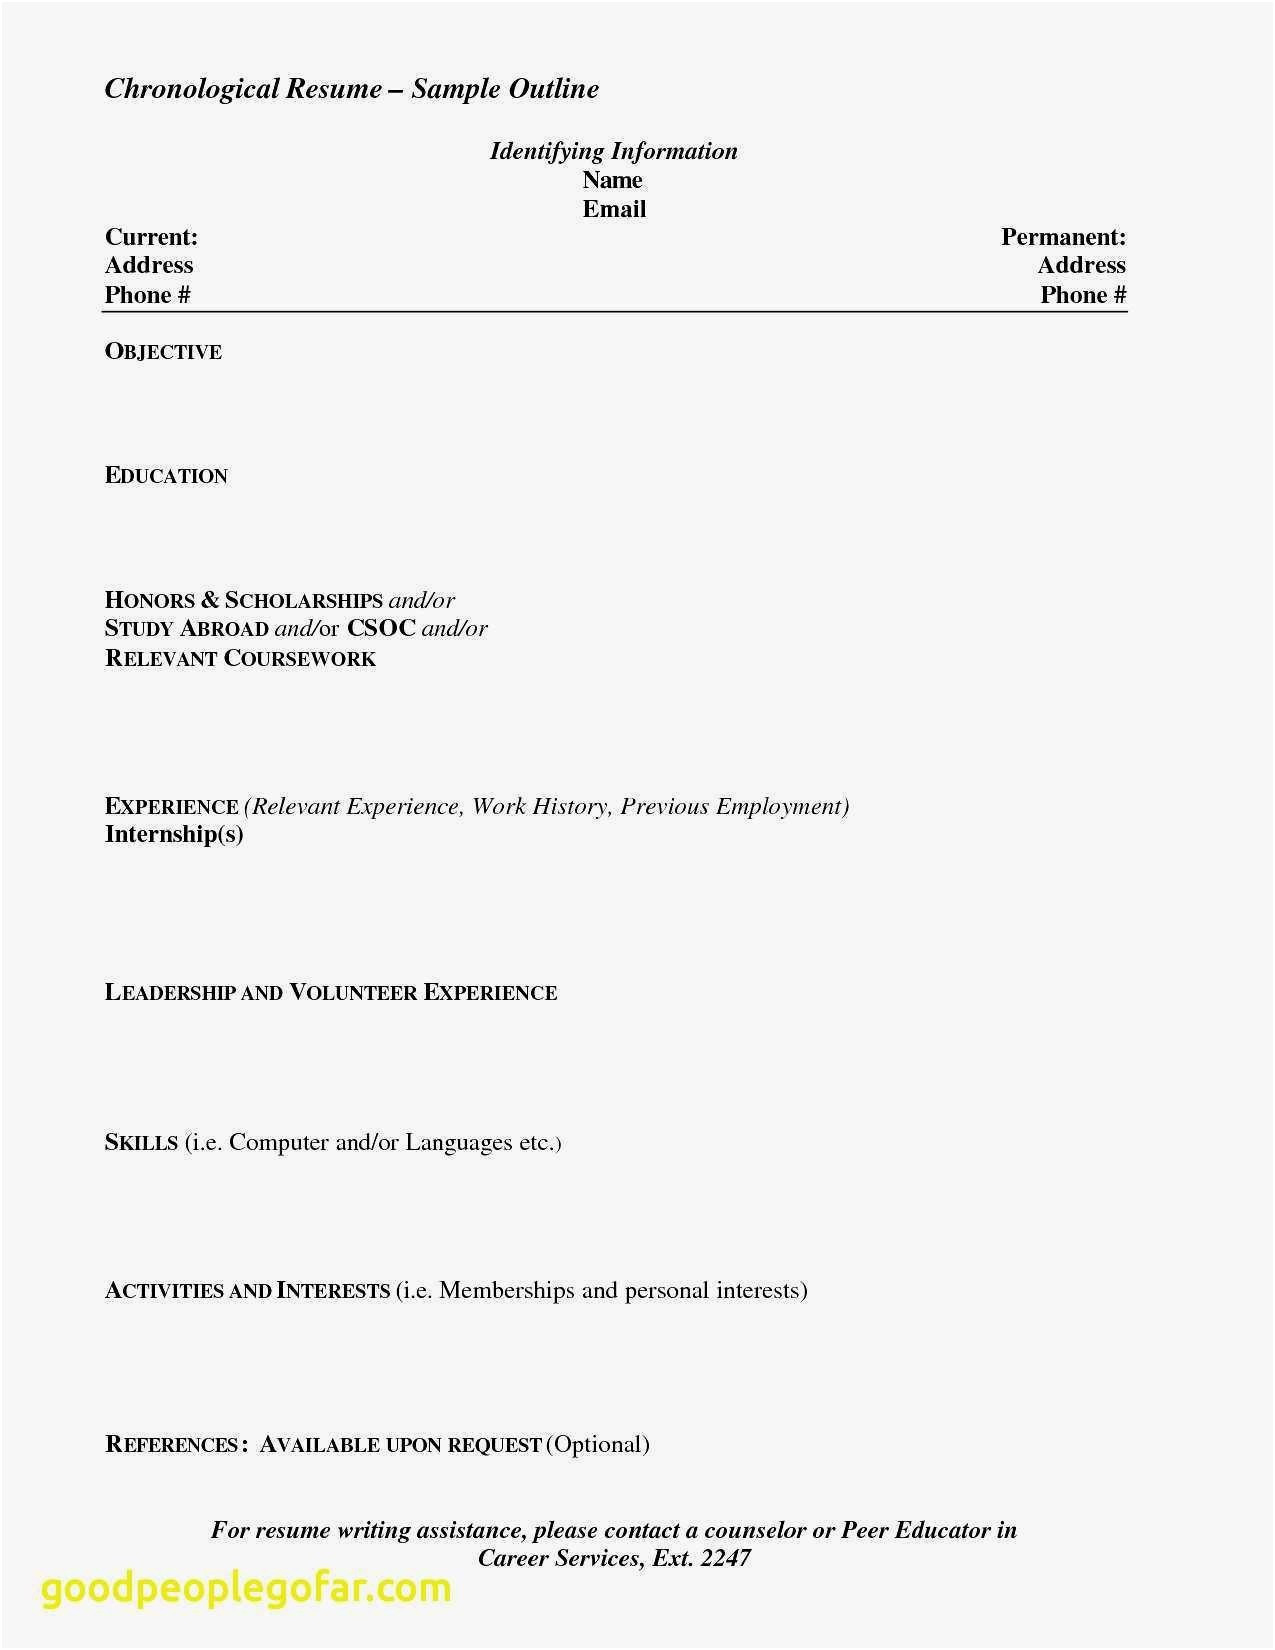 Customer Service Experience Resume - Good Objective Statement for Resume for Customer Service Free